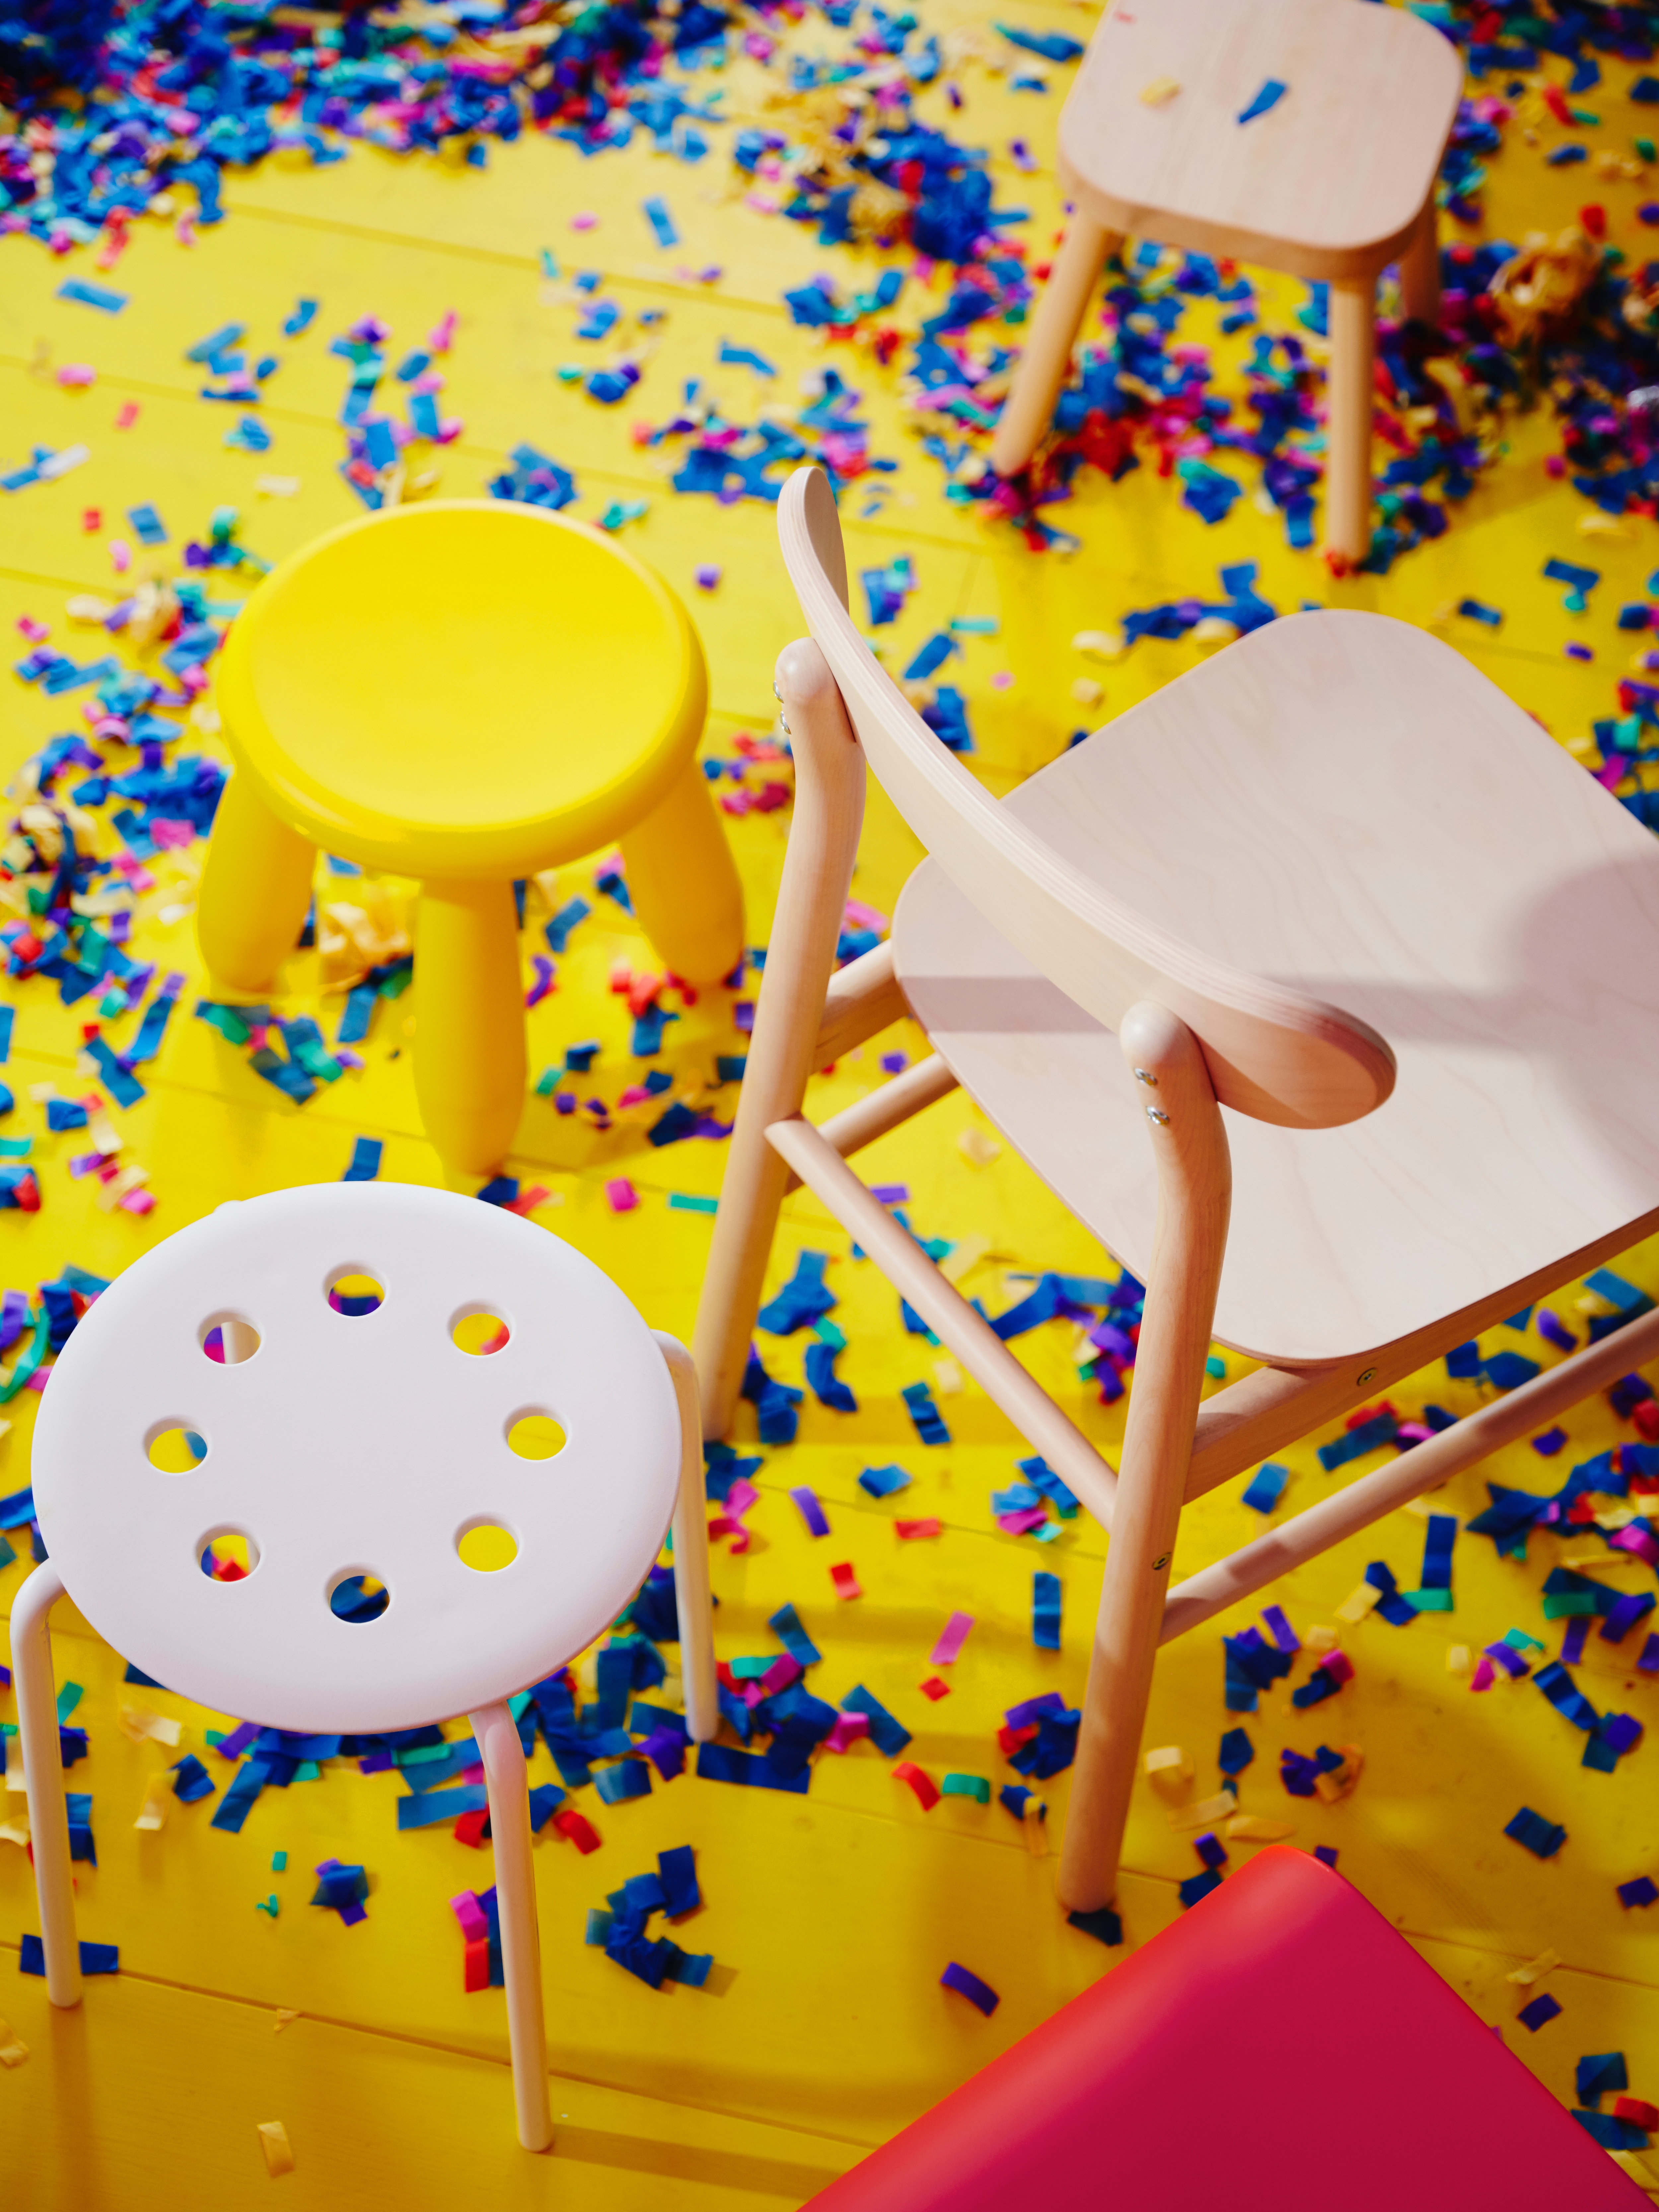 An aerial view of a confetti-covered floor with different stools and a solid birch RÖNNINGE chair that has a curved backrest.